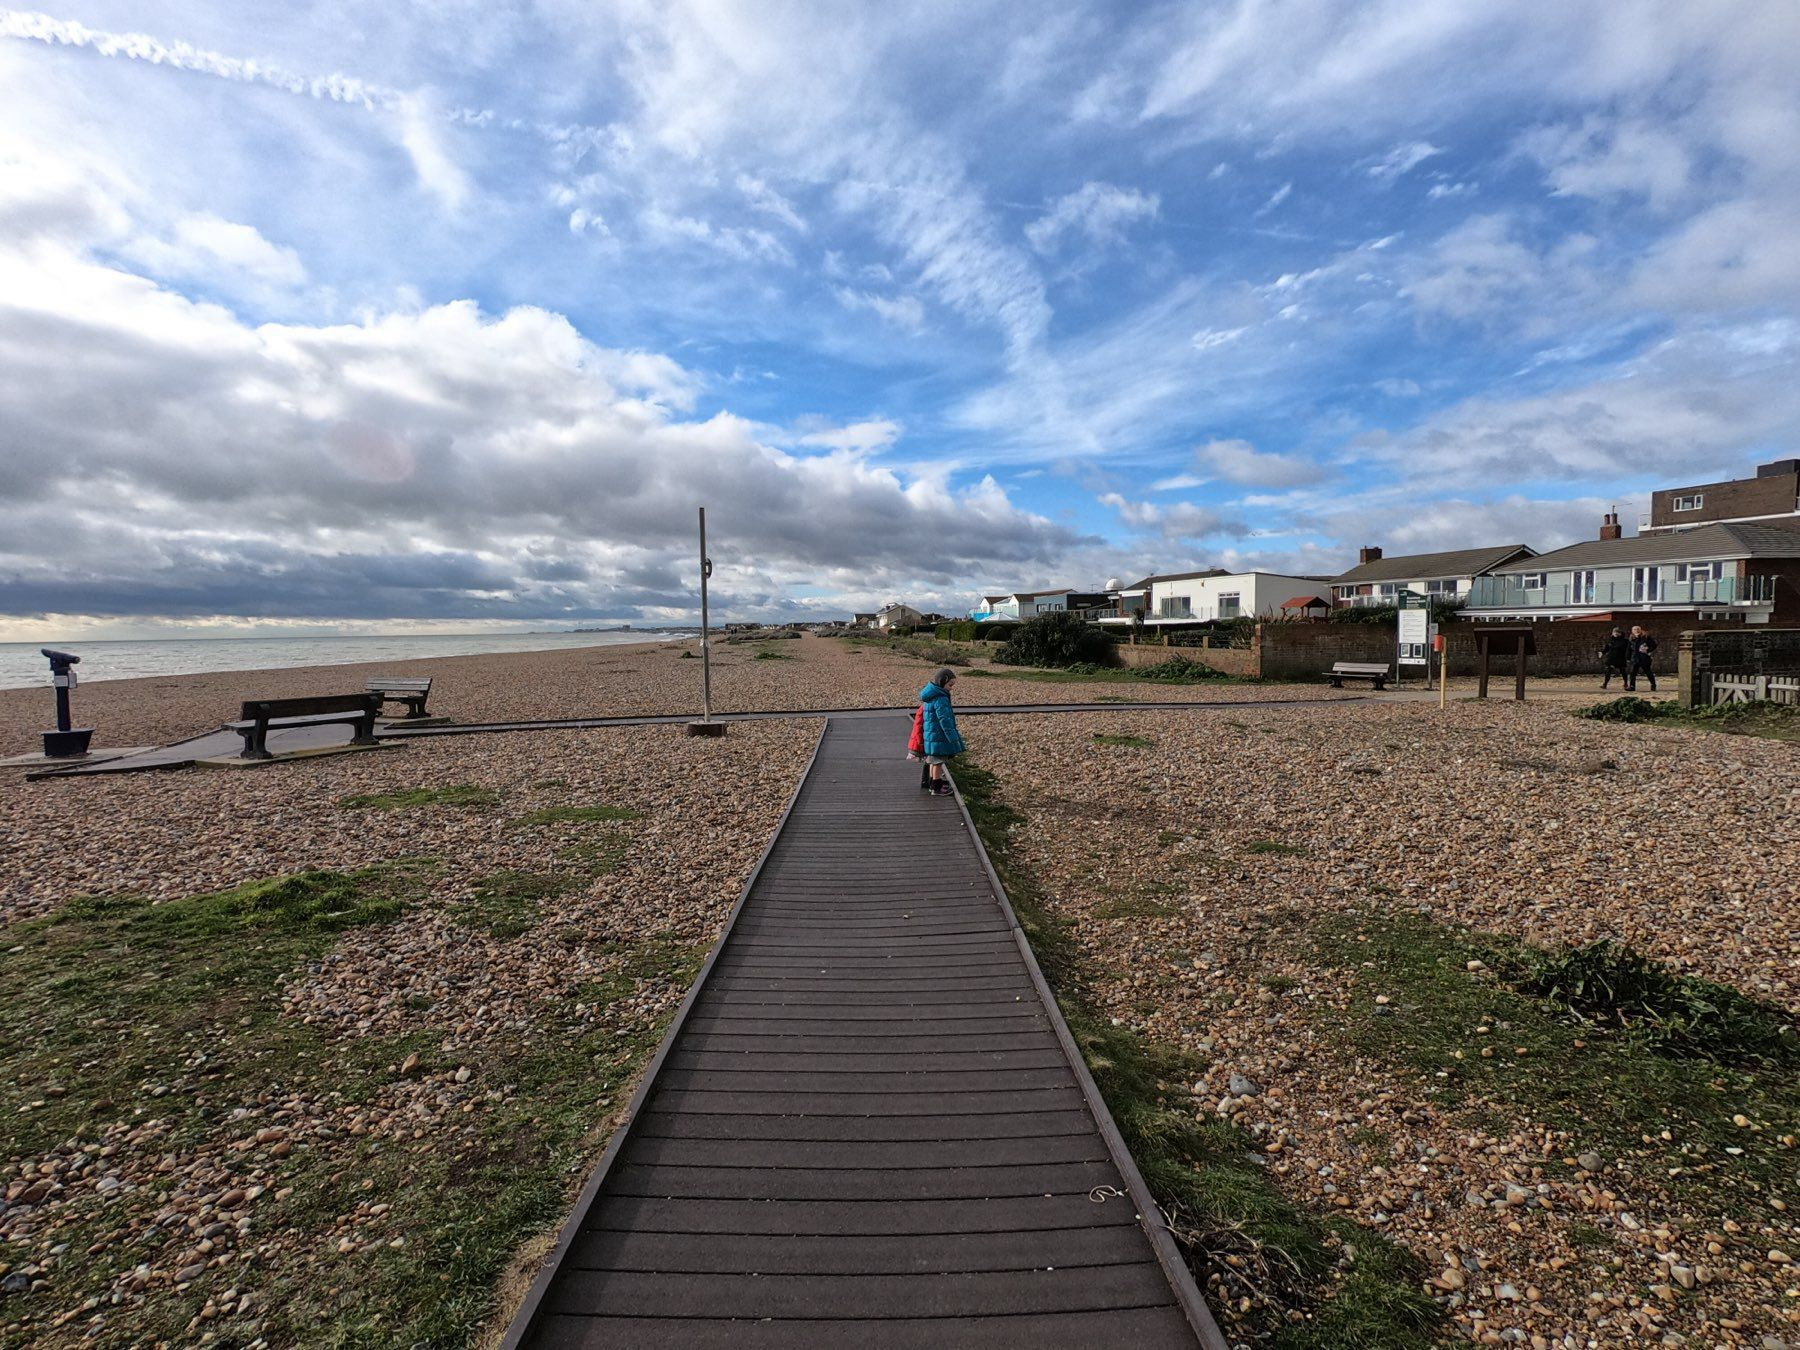 On the Shoreham Beach boardwalk.